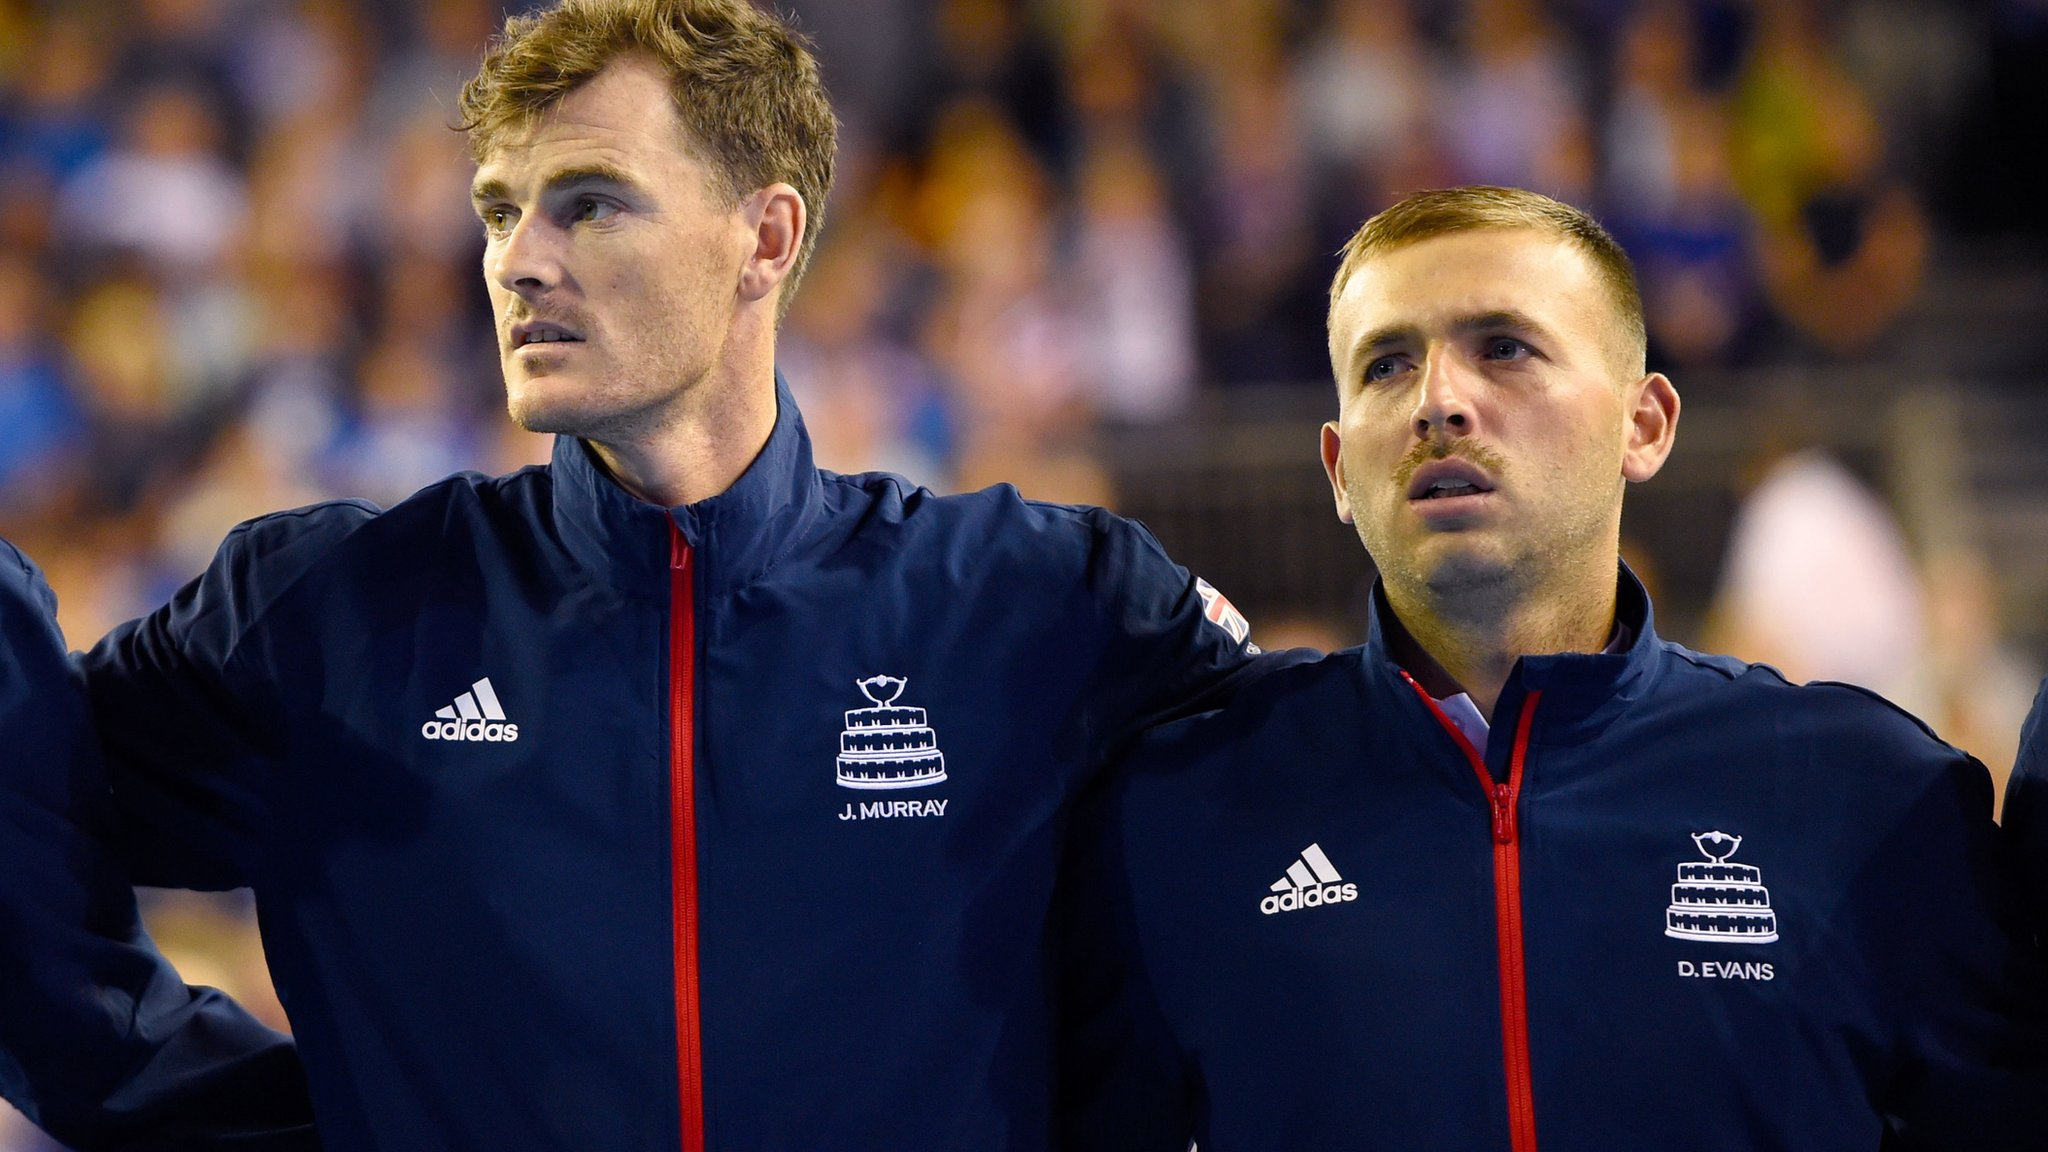 Australian Open 2019: Jamie Murray calls Dan Evans' comments 'ill-informed and dumb'